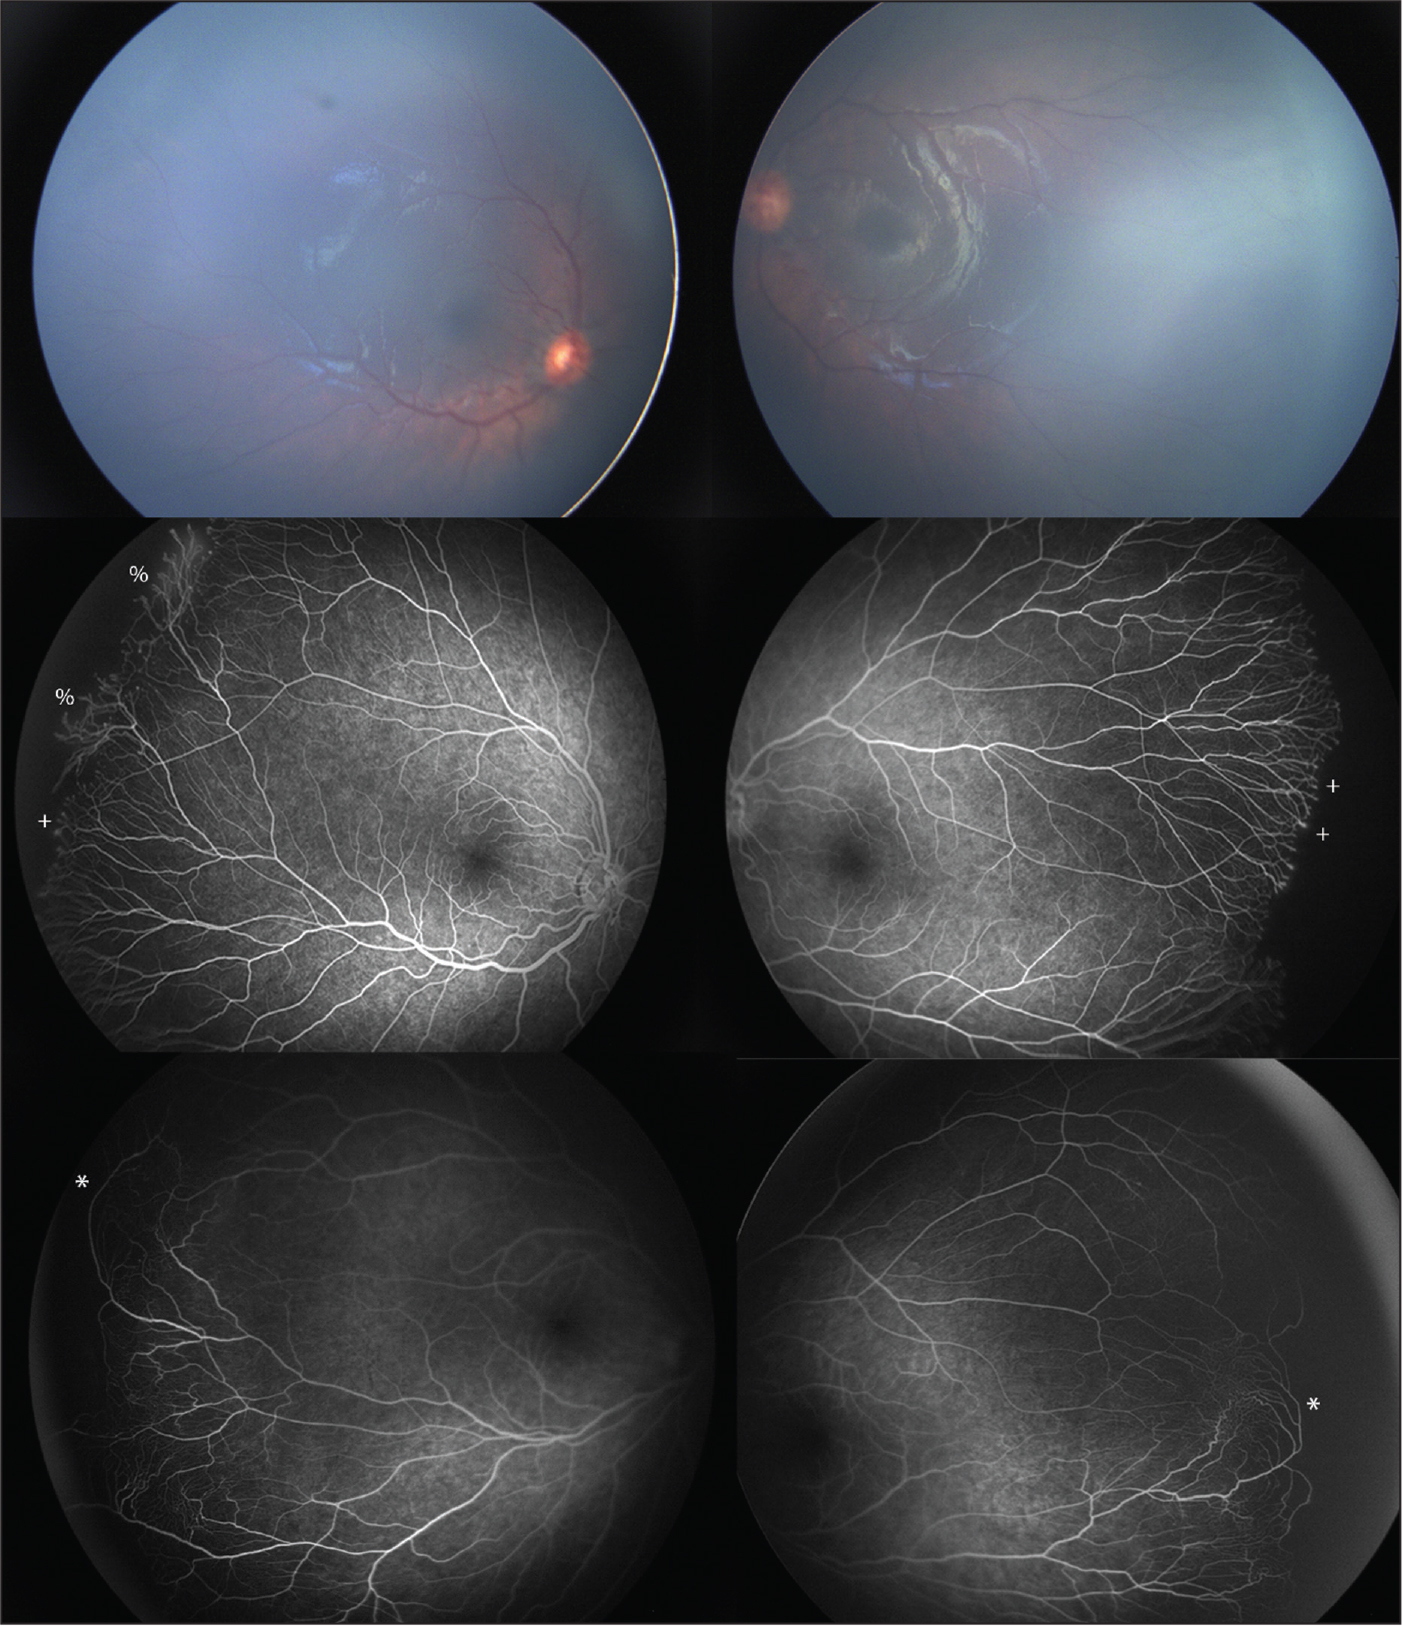 Retinal images and fundus fluorescein angiography (FFA) of pediatric retinas demonstrating persistent avascular retina and vascular abnormalities at the vascular/avascular junction. Retinal images (top) and FFA (middle) of the same eyes showing avascular peripheral retina. Abnormal vessels at the avascular border are indicated by a percent symbol (%) and vessel end budding are indicated with a plus sign (+). FFA (bottom) of another patient with avascular peripheral retina demonstrates vessel anastomoses/shunting and are indicated with an asterisk (*).